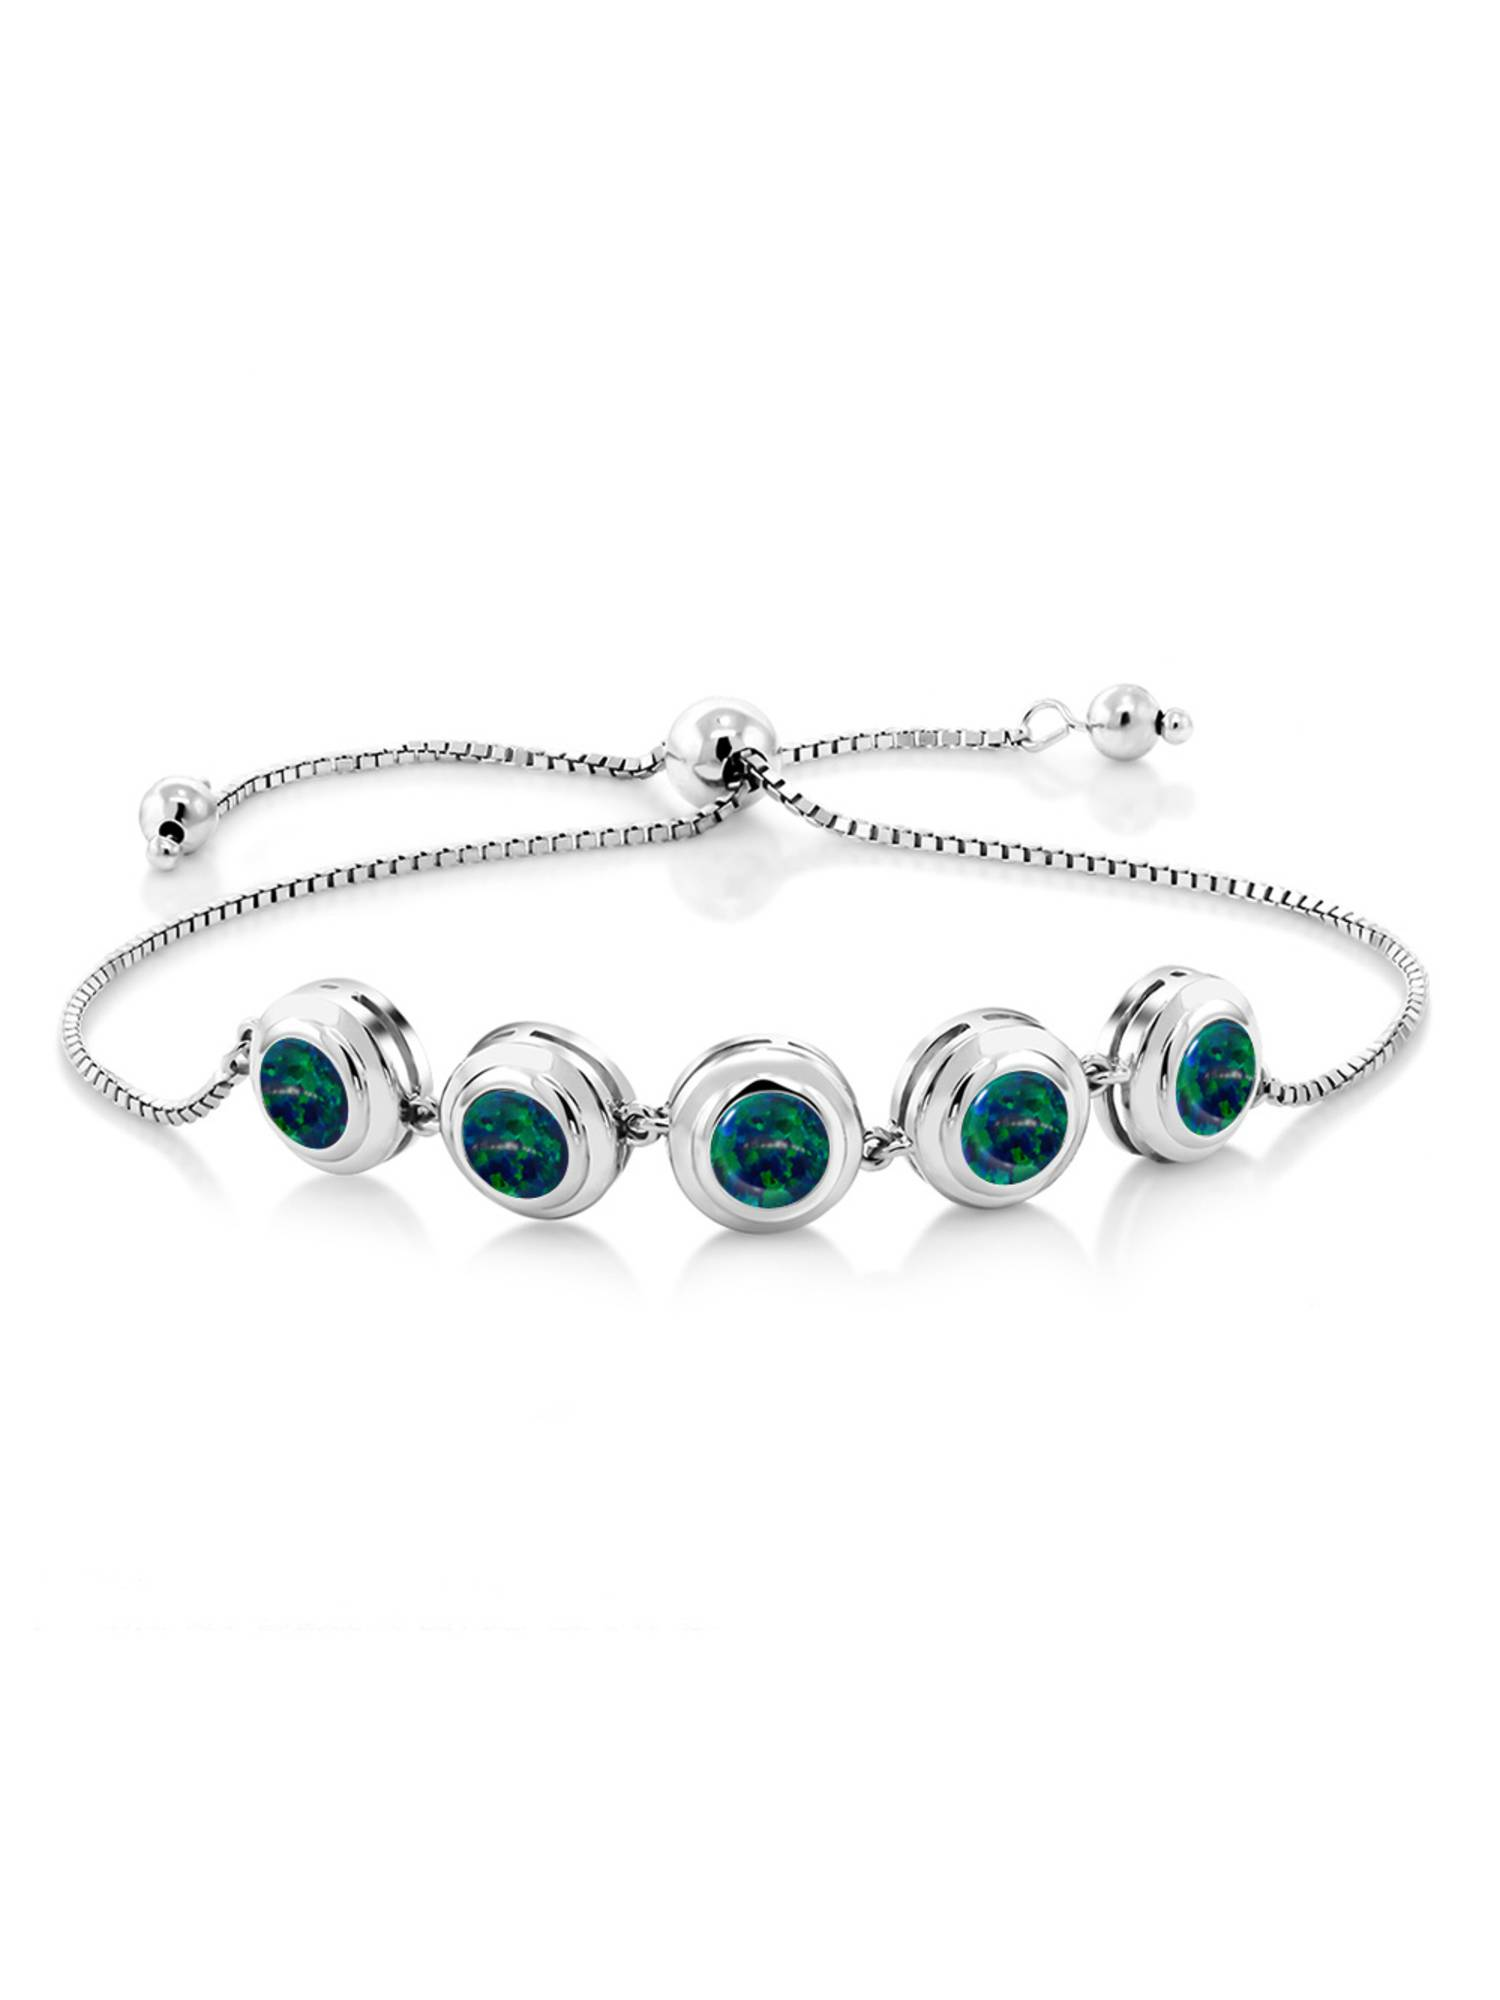 3.75 Ct Round Cabochon Green Simulated Opal 925 Sterling Silver Bracelet by